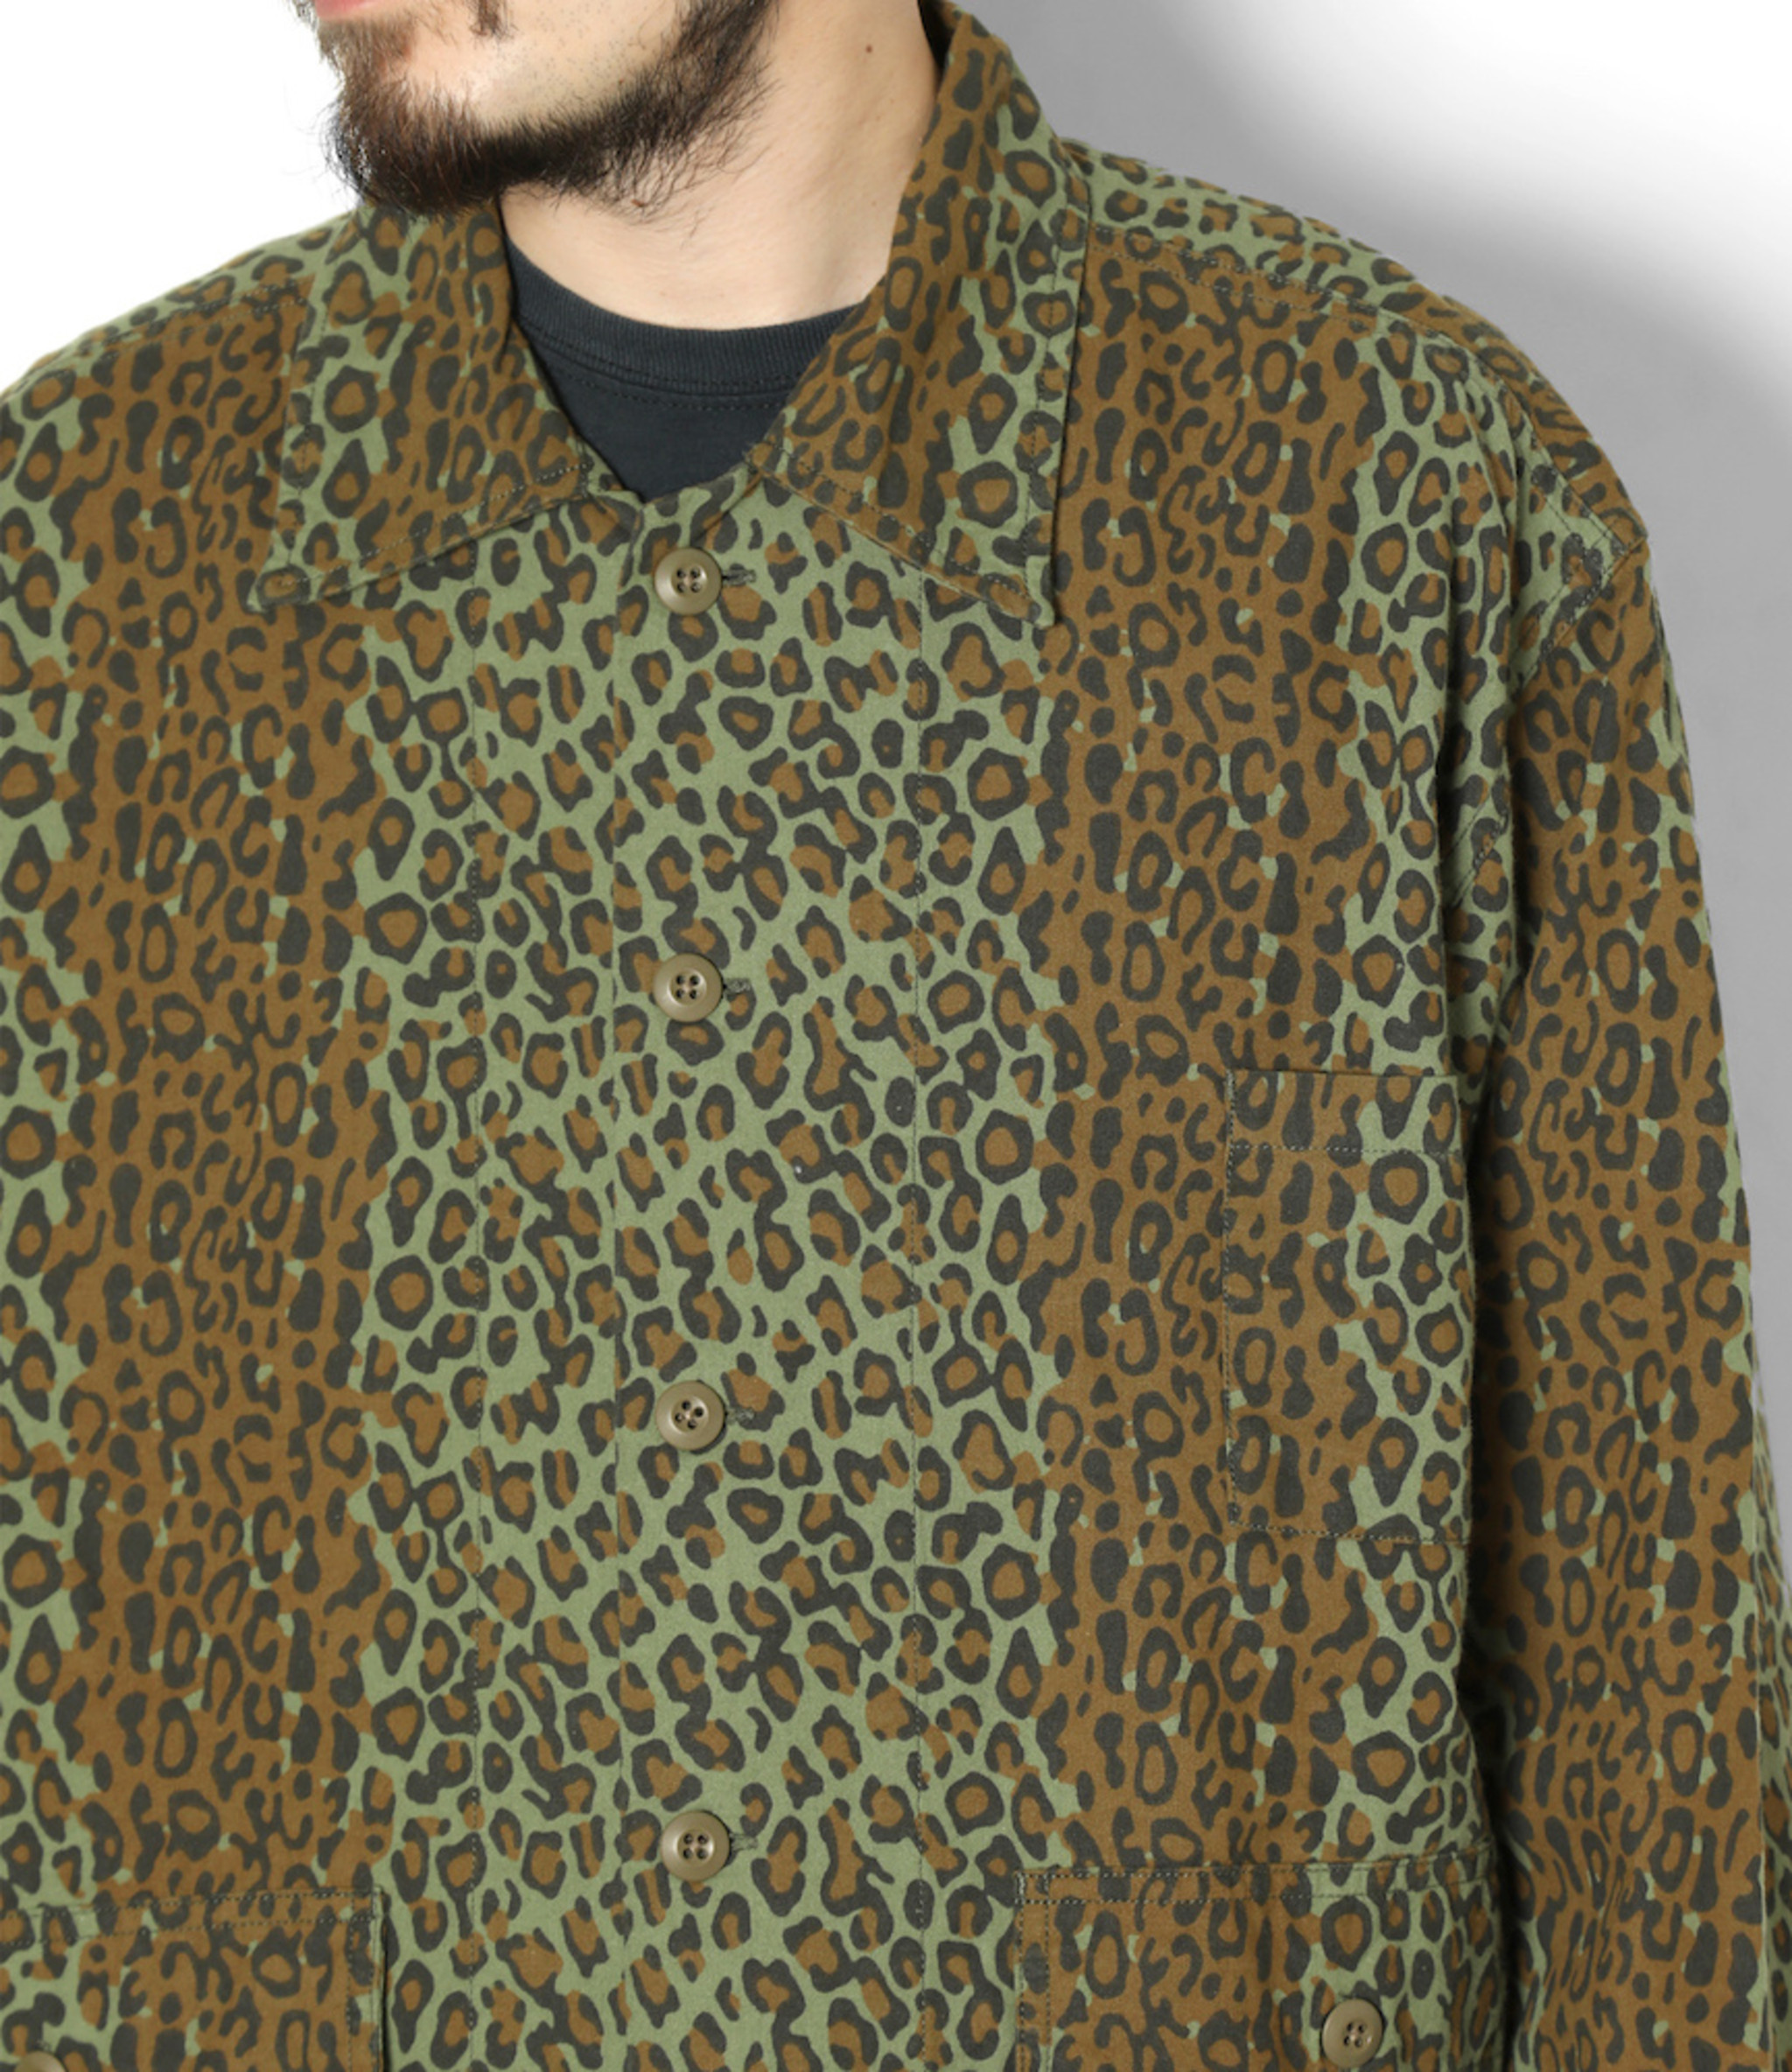 South2 West8 Hunting Shirt - Printed Flannel / Camouflage  - Leopard